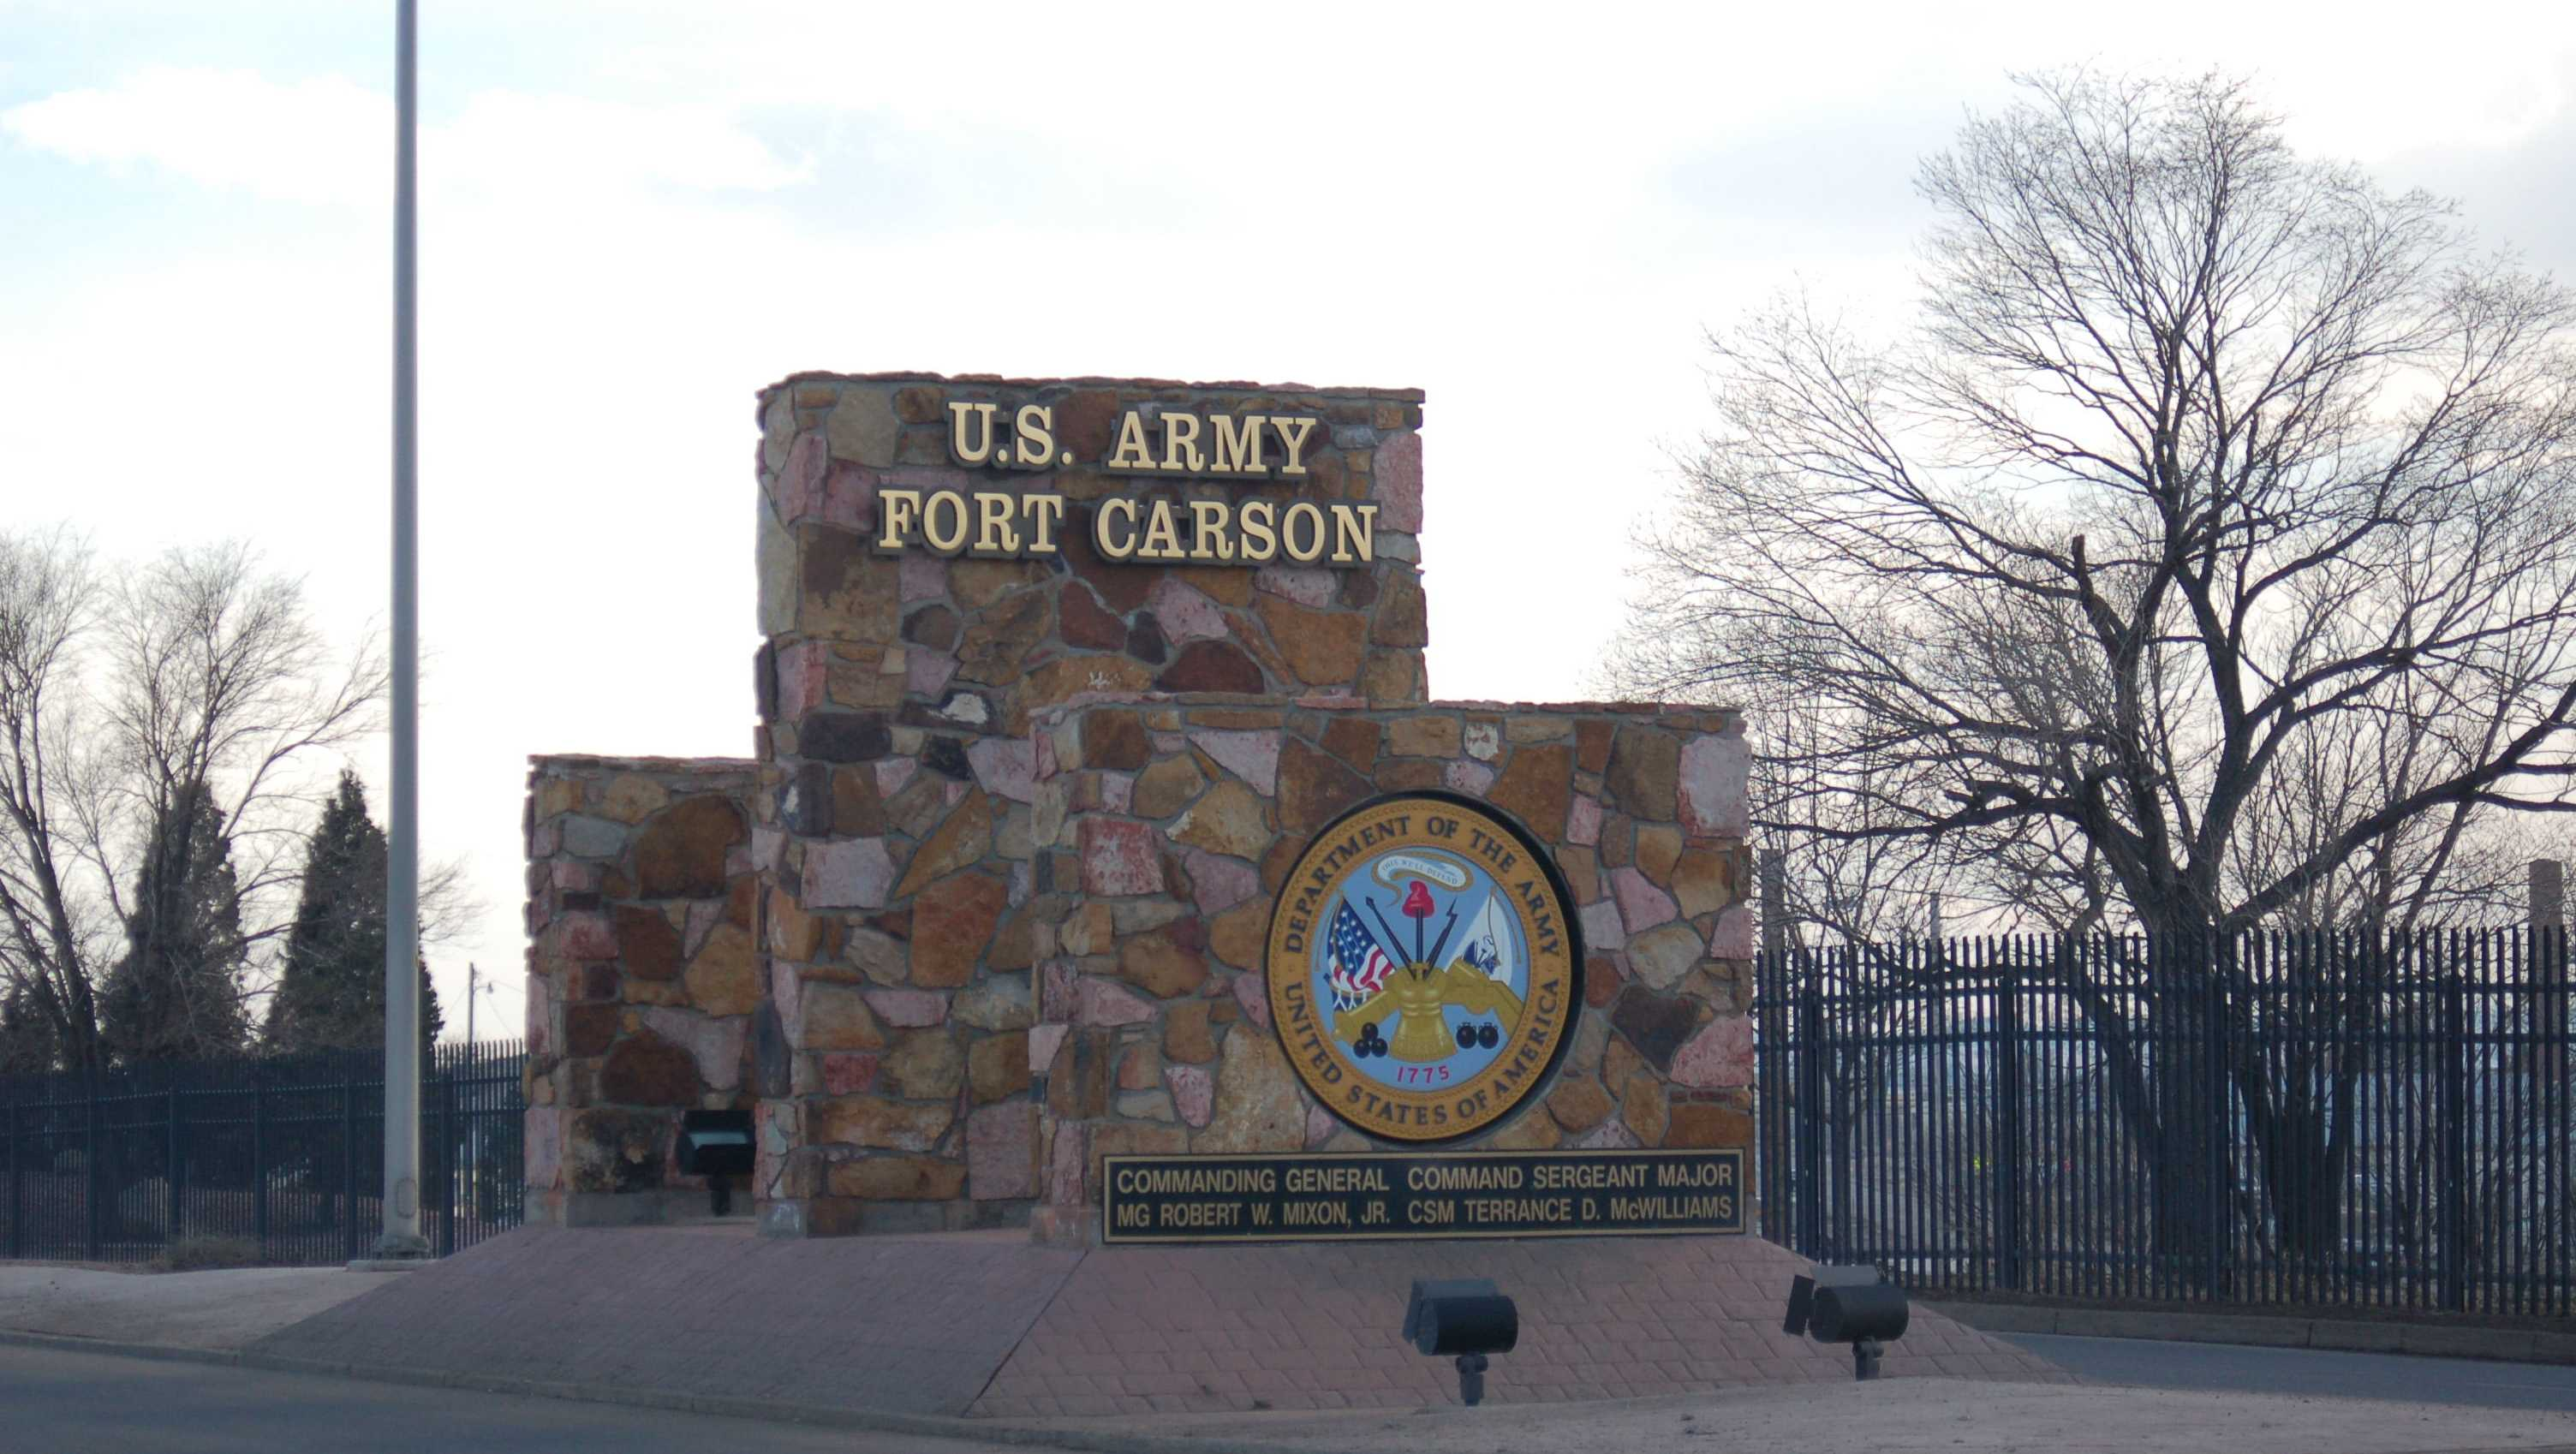 Fort Carson near Colorado Springs, Colo.